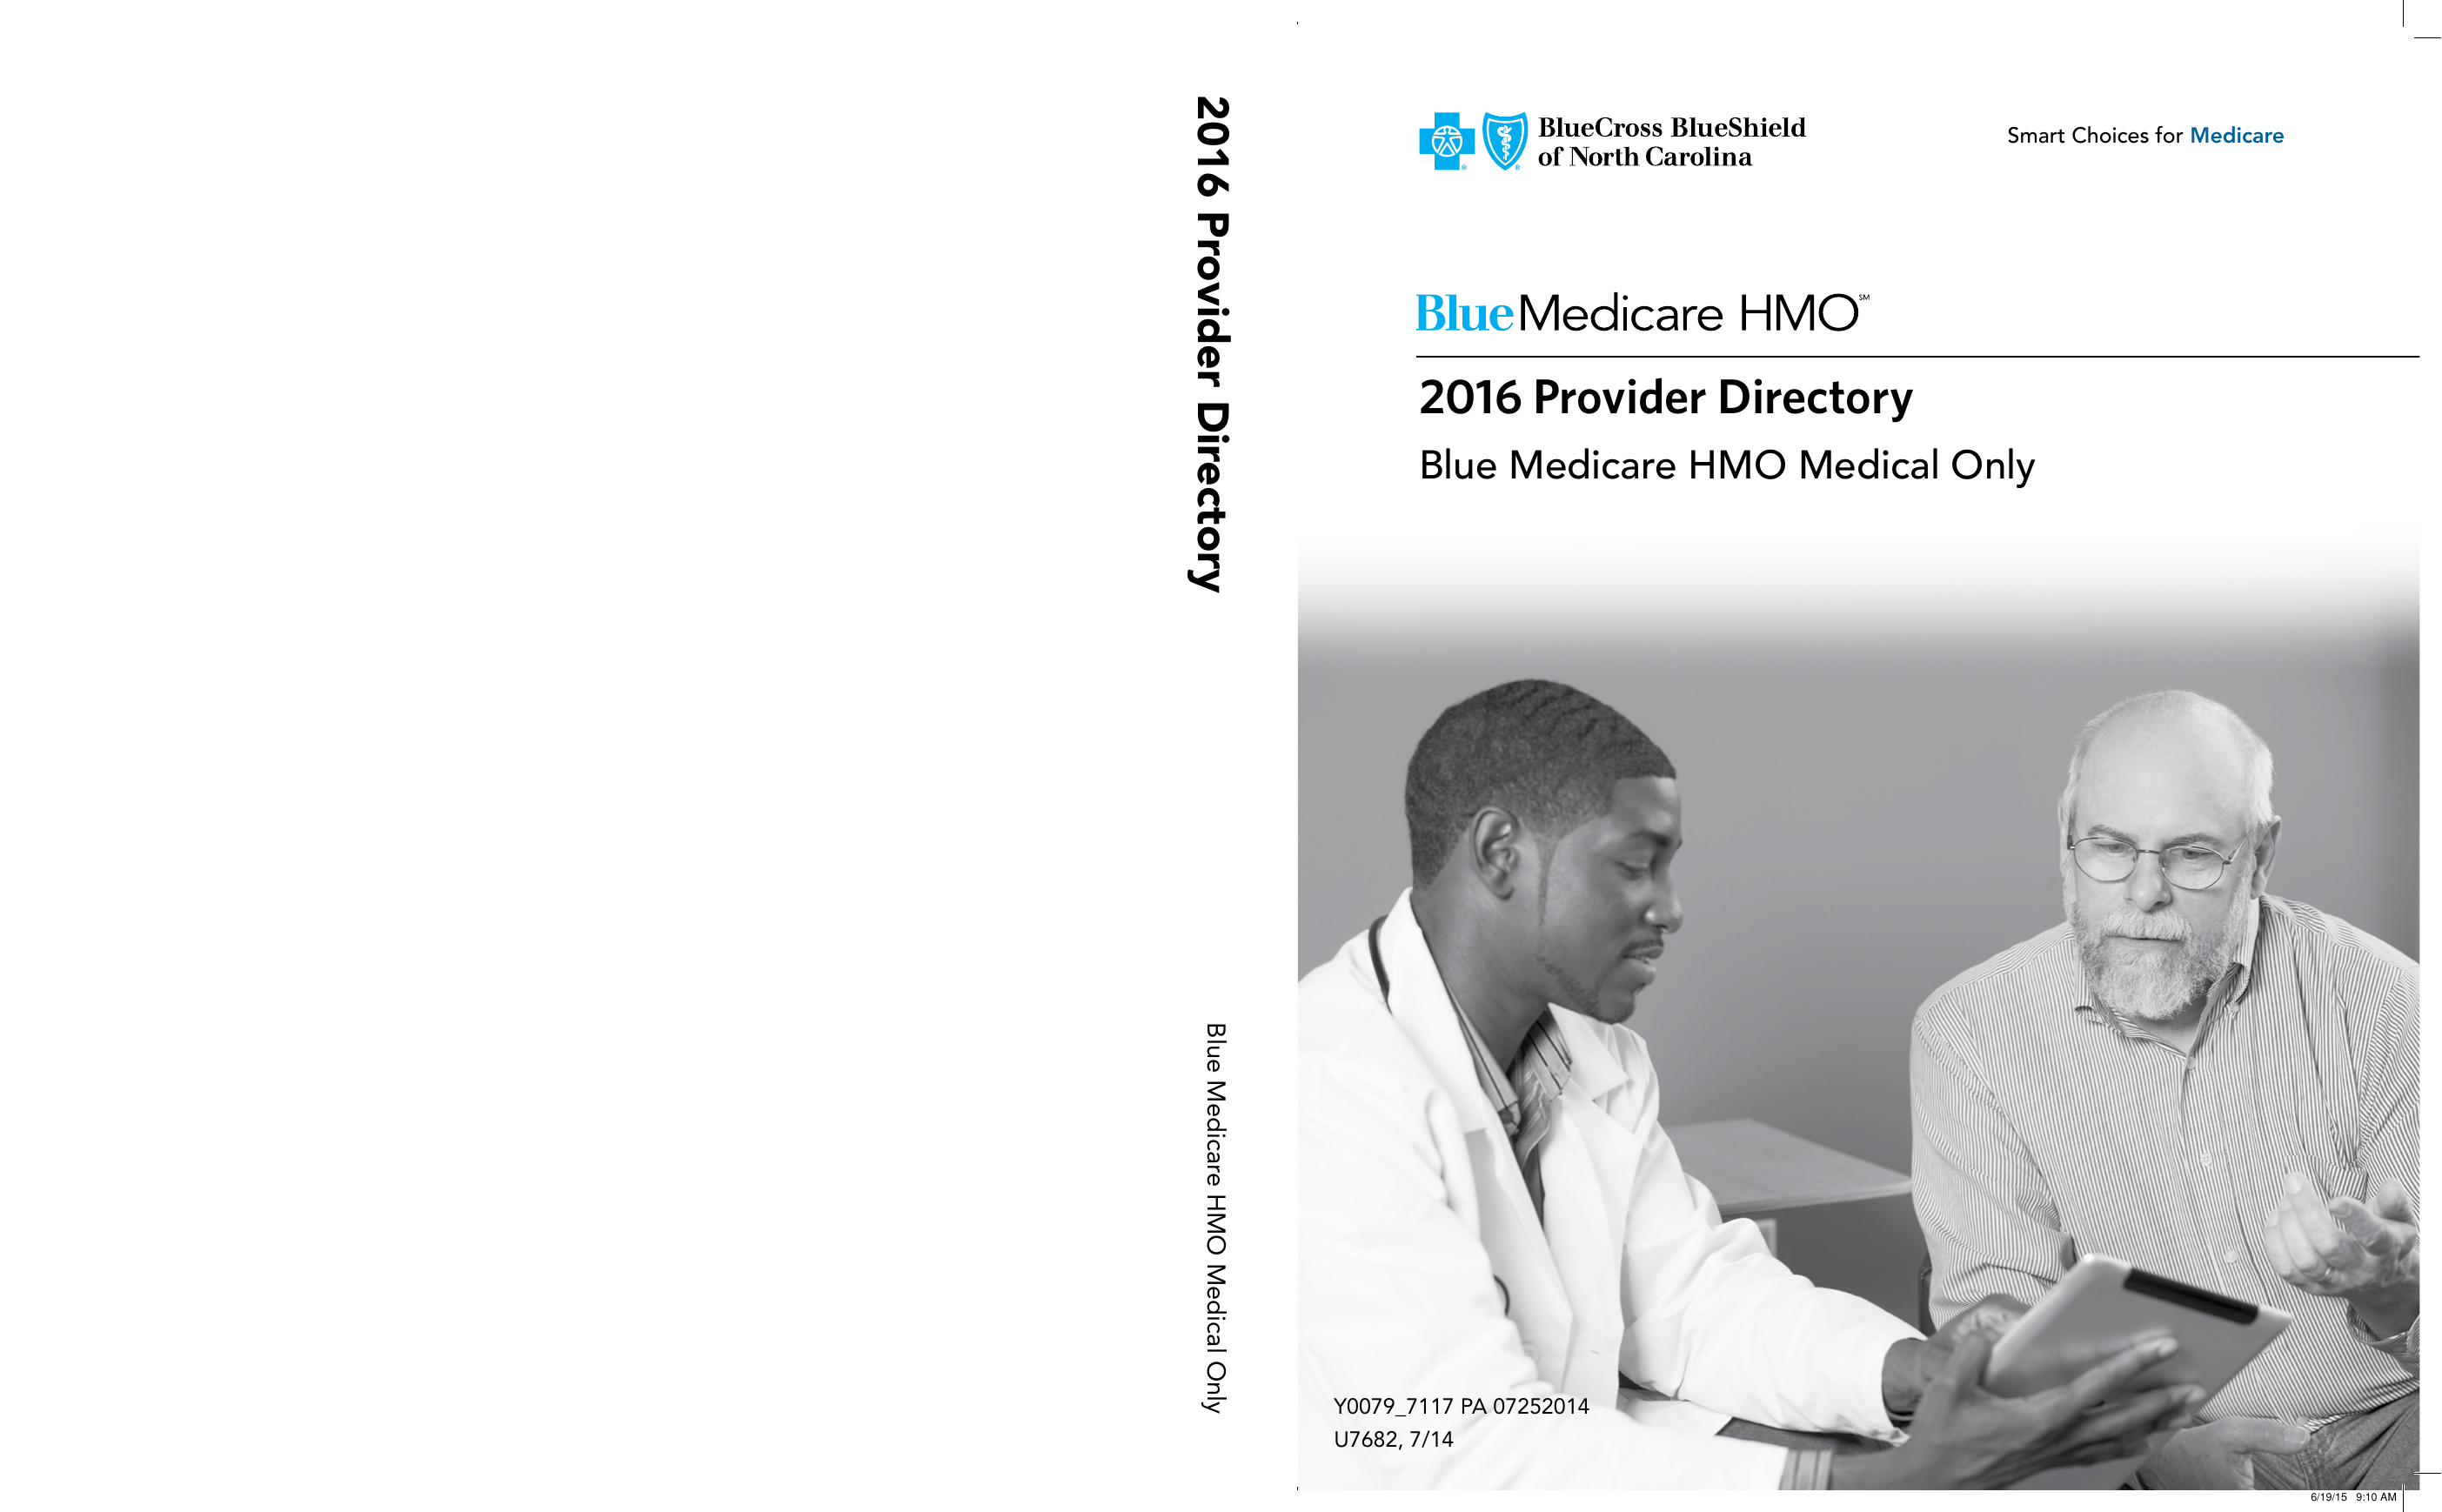 2016 Provider Directory - Blue Cross and Blue Shield of North